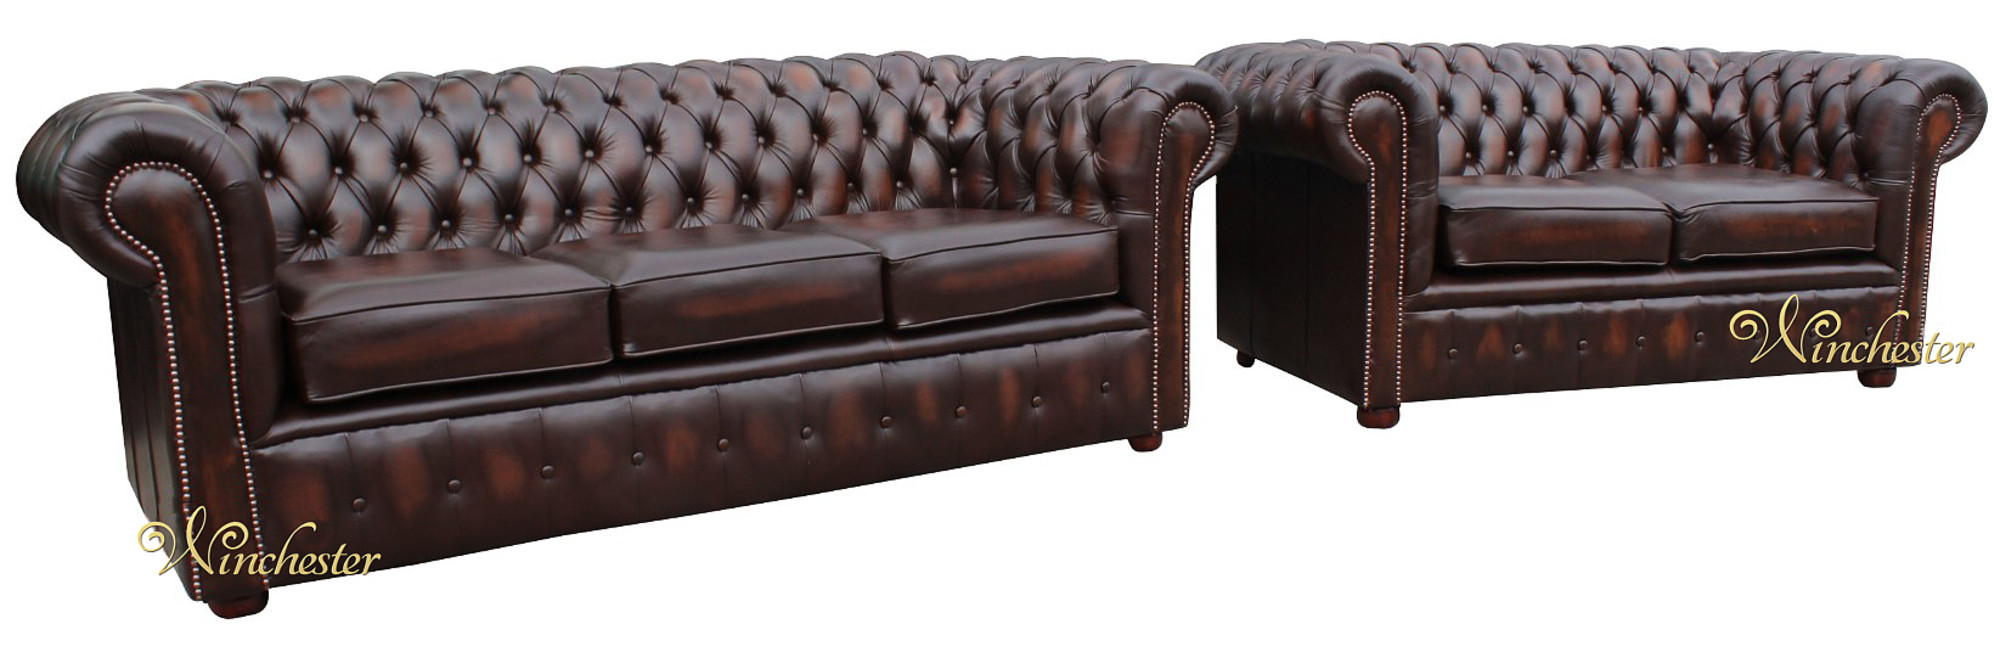 Chesterfield London 3+2 Leather Sofa Suite Offer Antique Brown, Chesterfield  Leather Sofa, UK Manufactured, Leather Sofas, Traditional Sofas